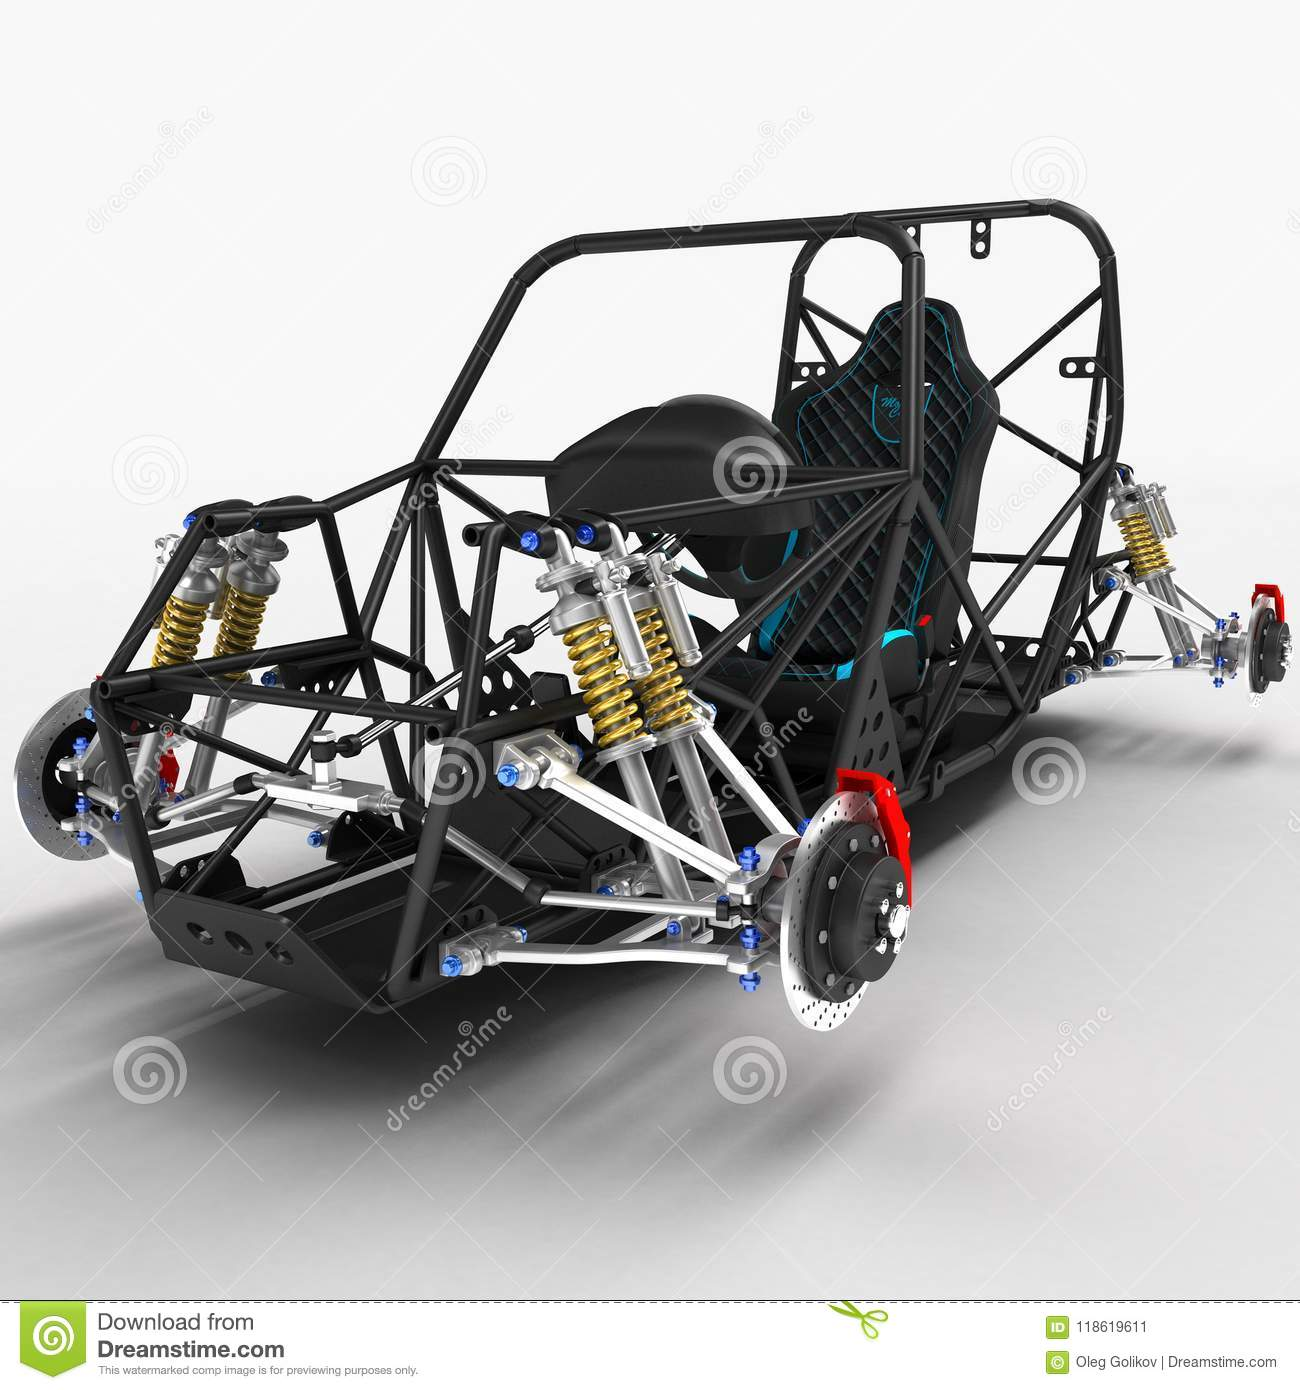 The Frame Frame Of The Sports Car Is A Buggy With The Basic Design